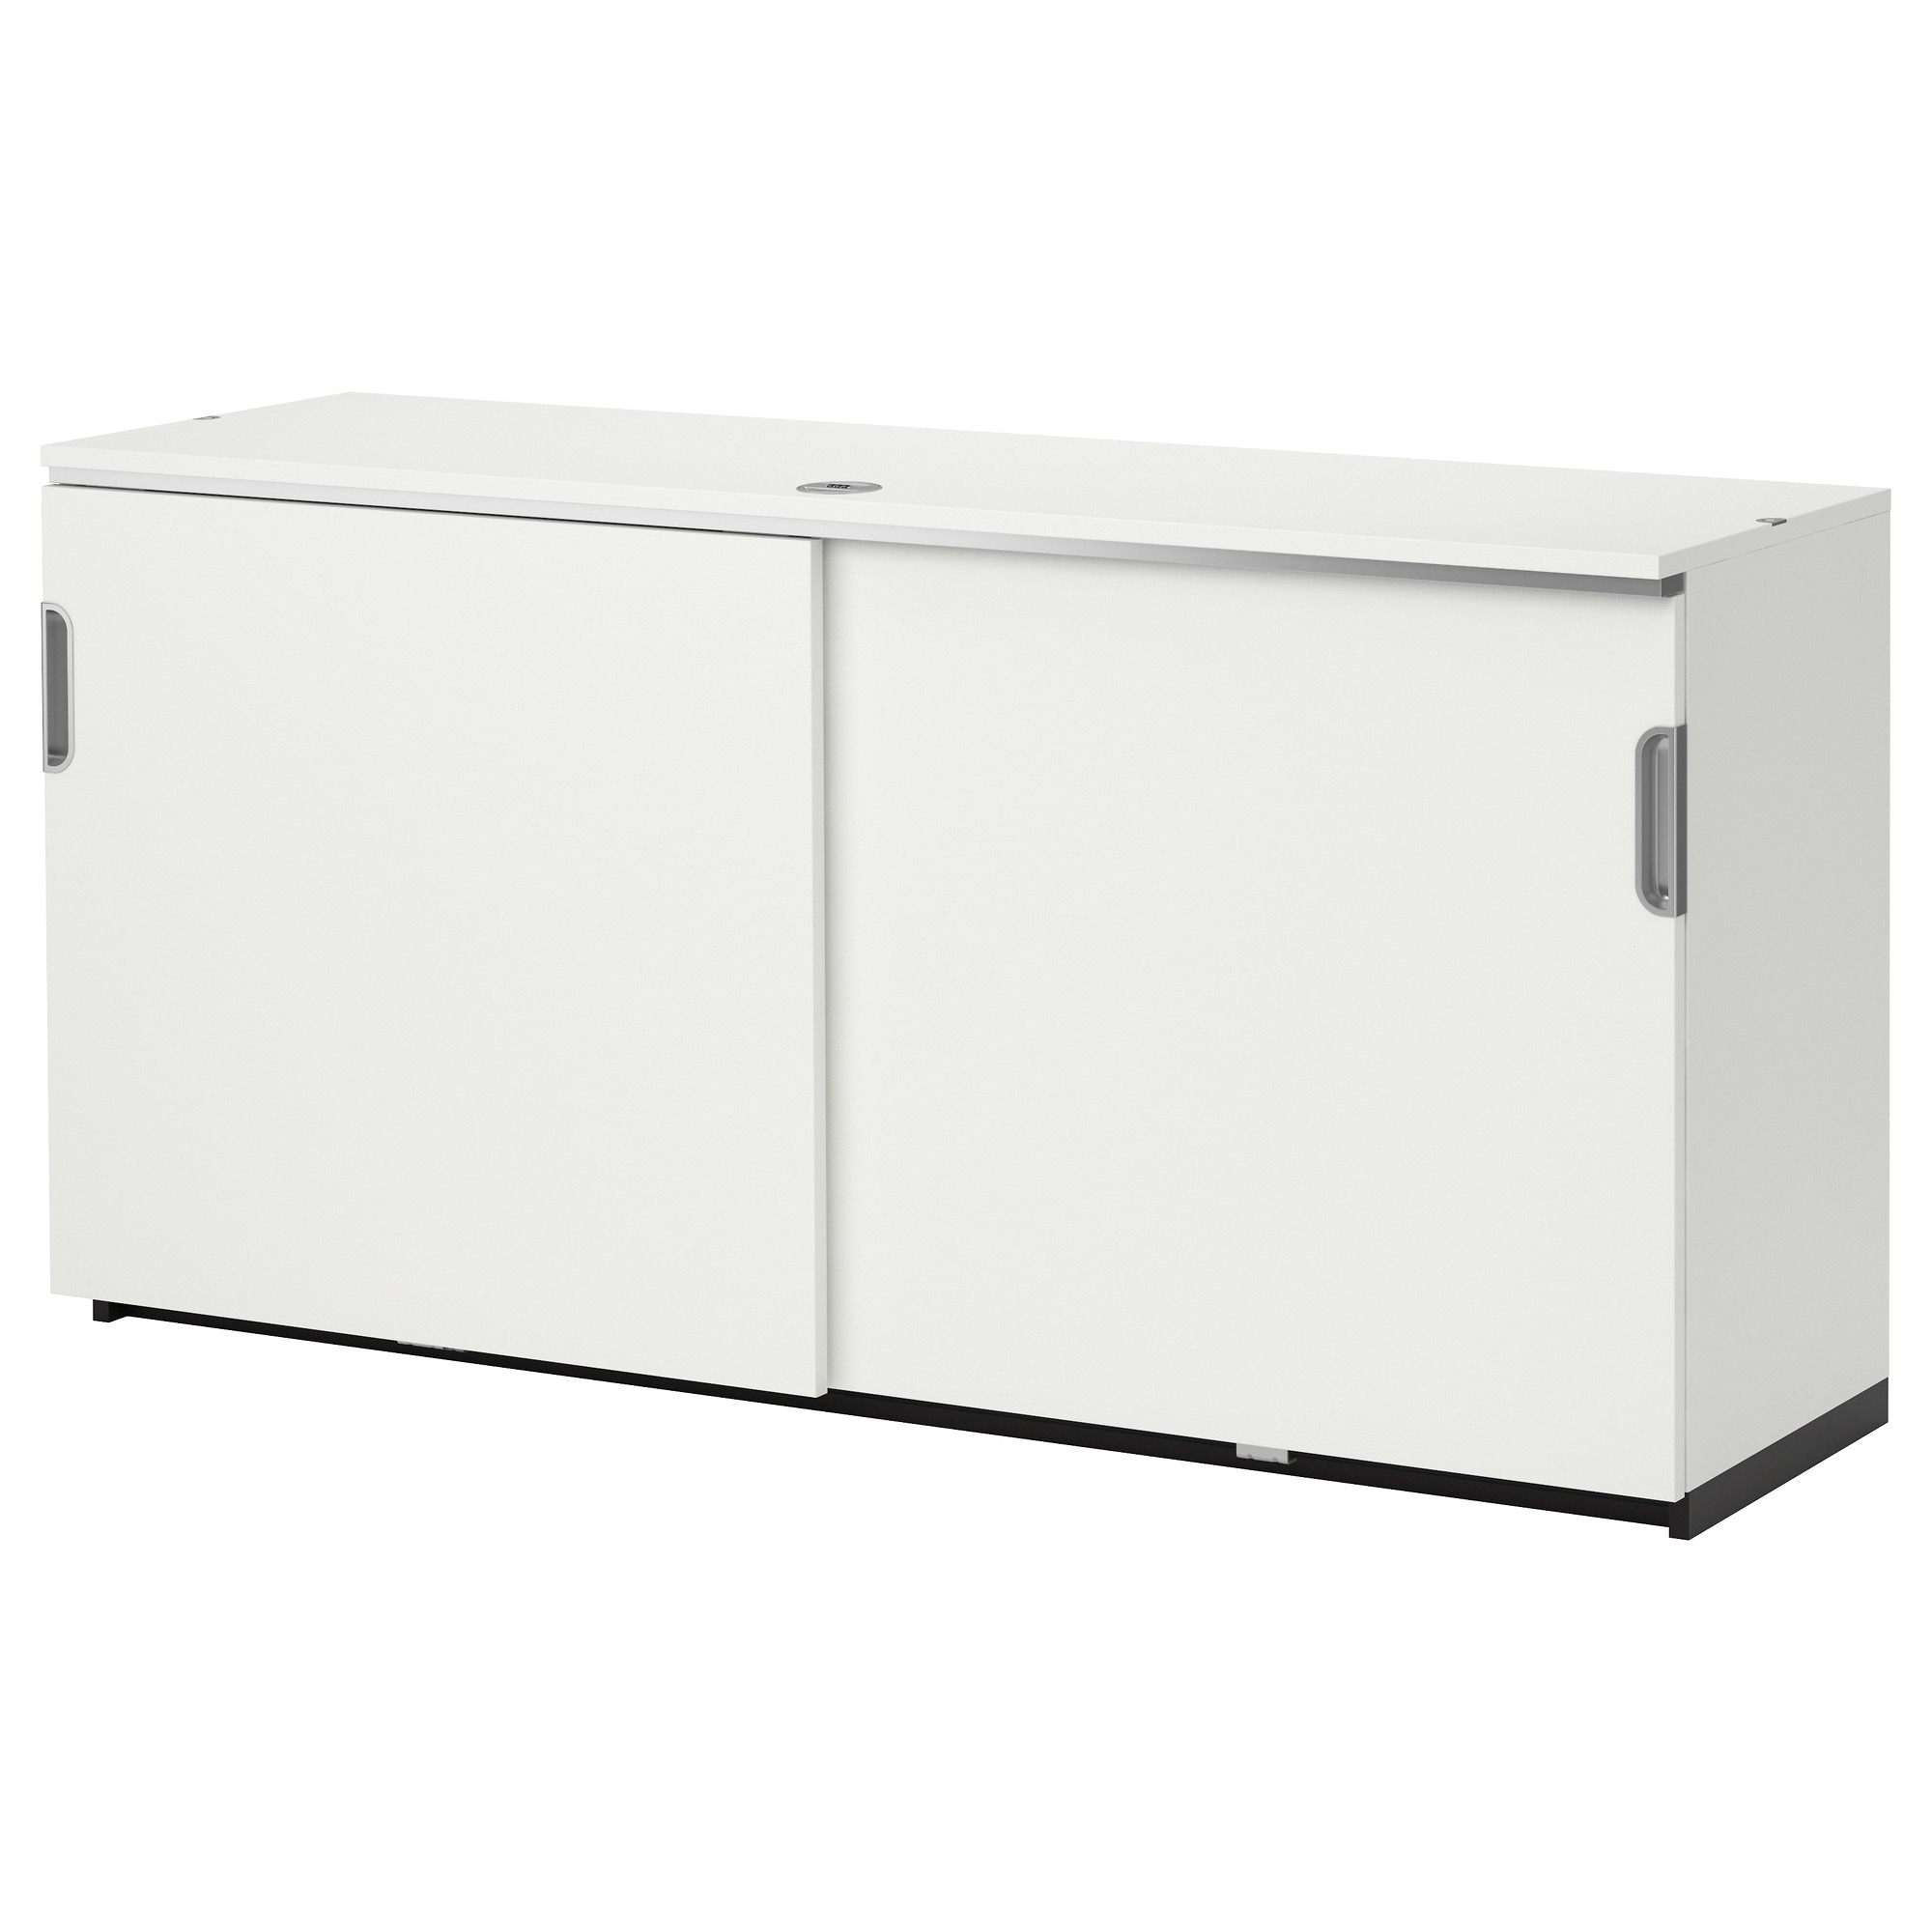 GALANT Cabinet With Sliding Doors   White   IKEA